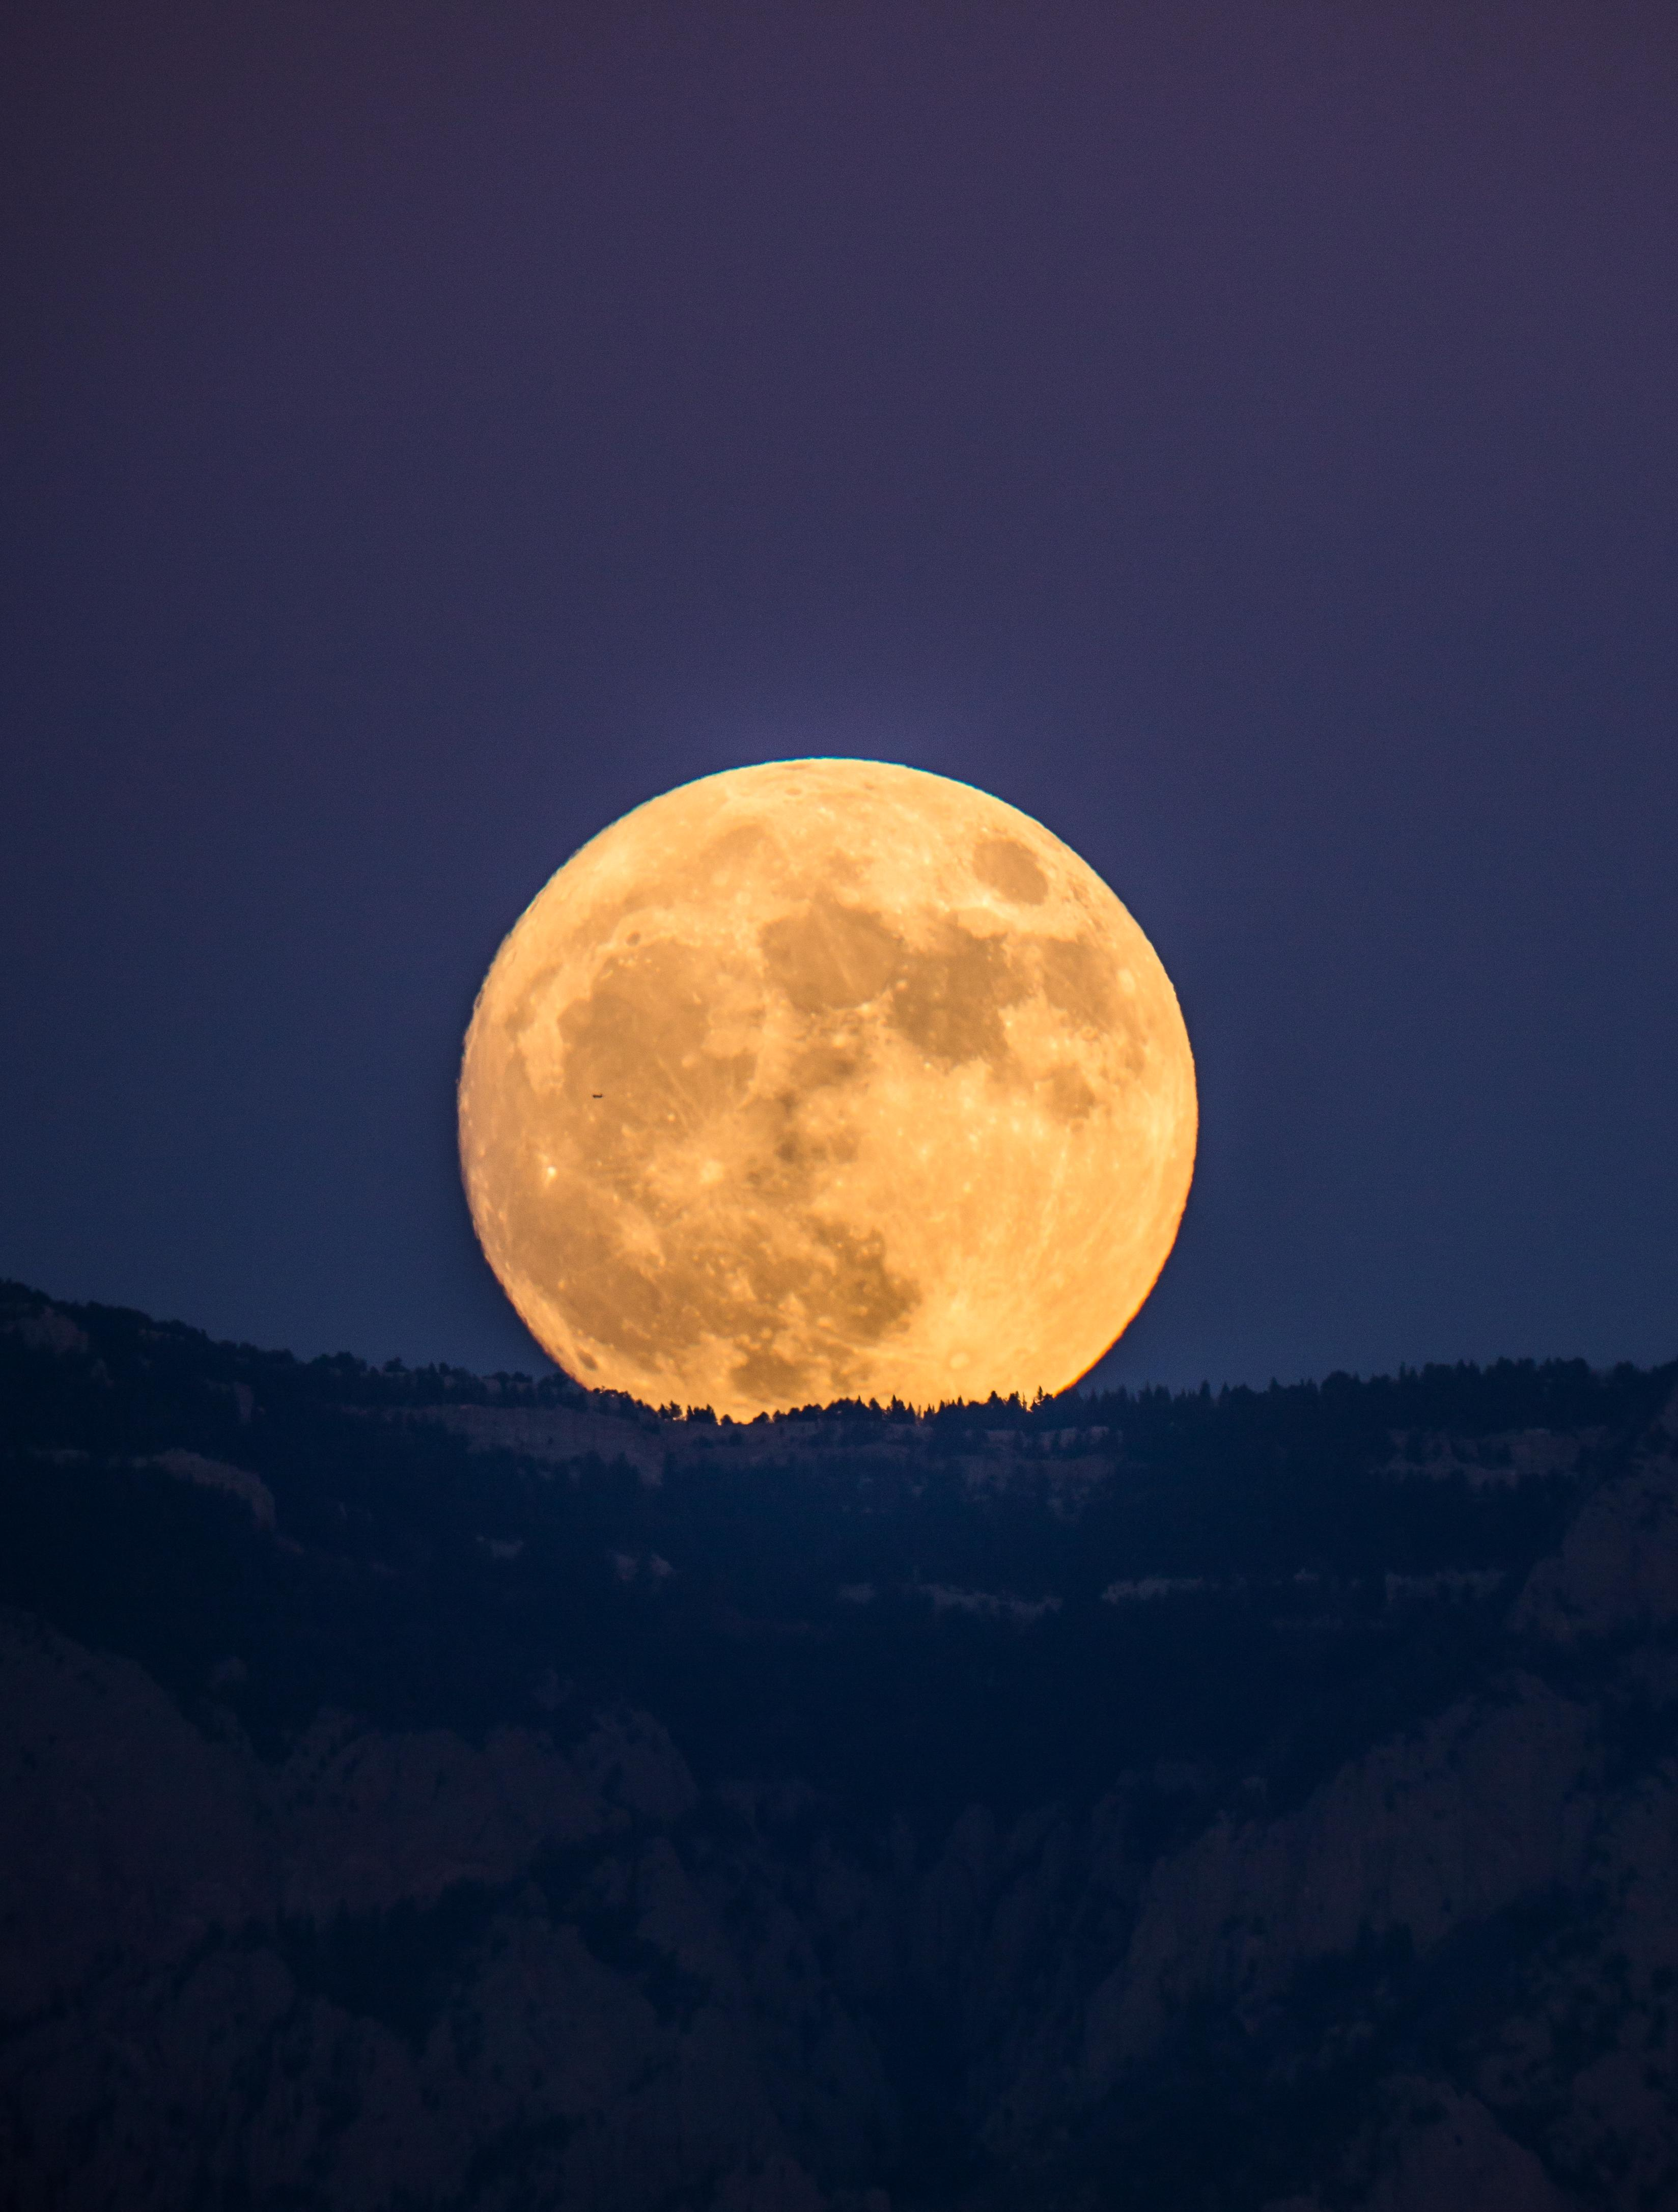 'Supermoon' Photos: The Closest Full Moon Until 2034 in Pictures